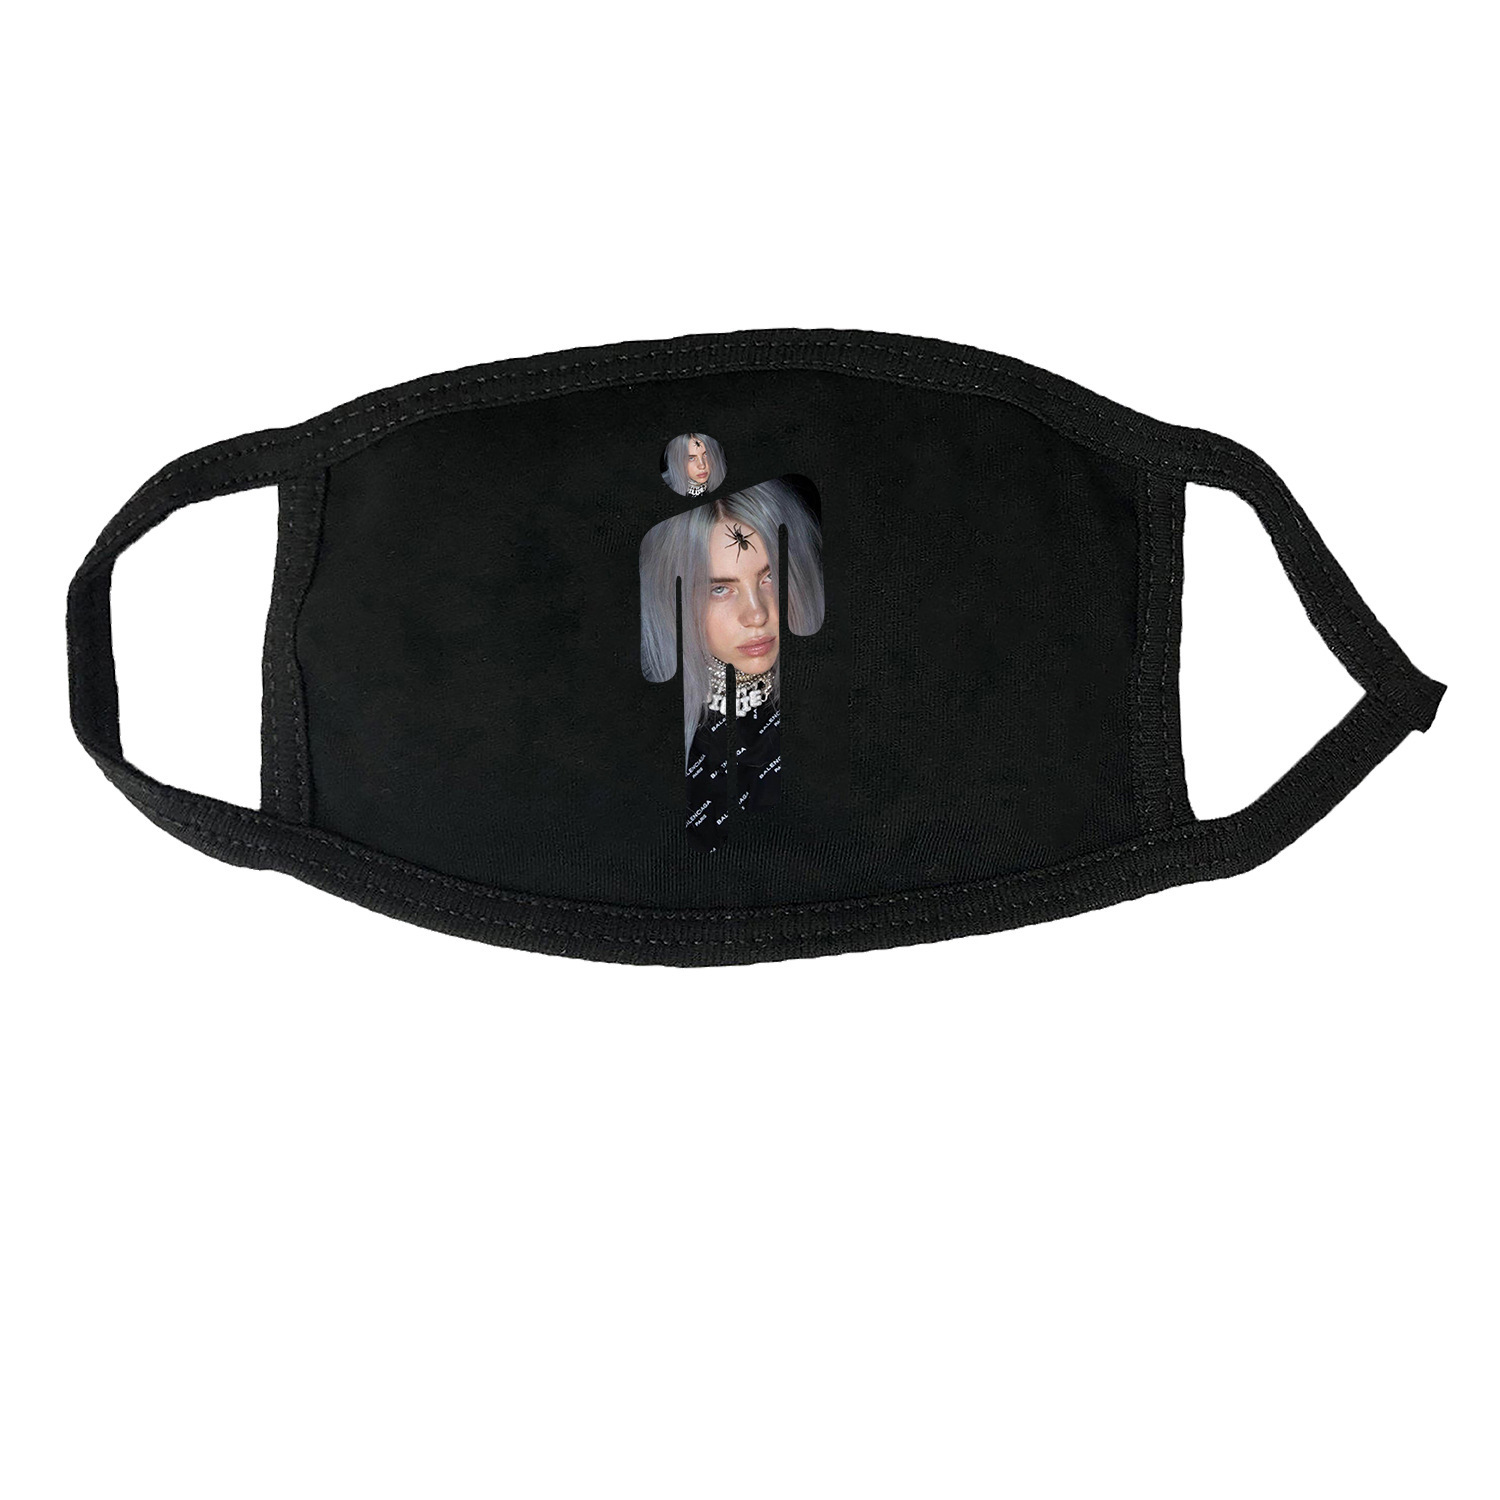 Billie Eilish Mask Fans Group Hit Call Mask Concerts The Edition Cover New Album Activity Mask